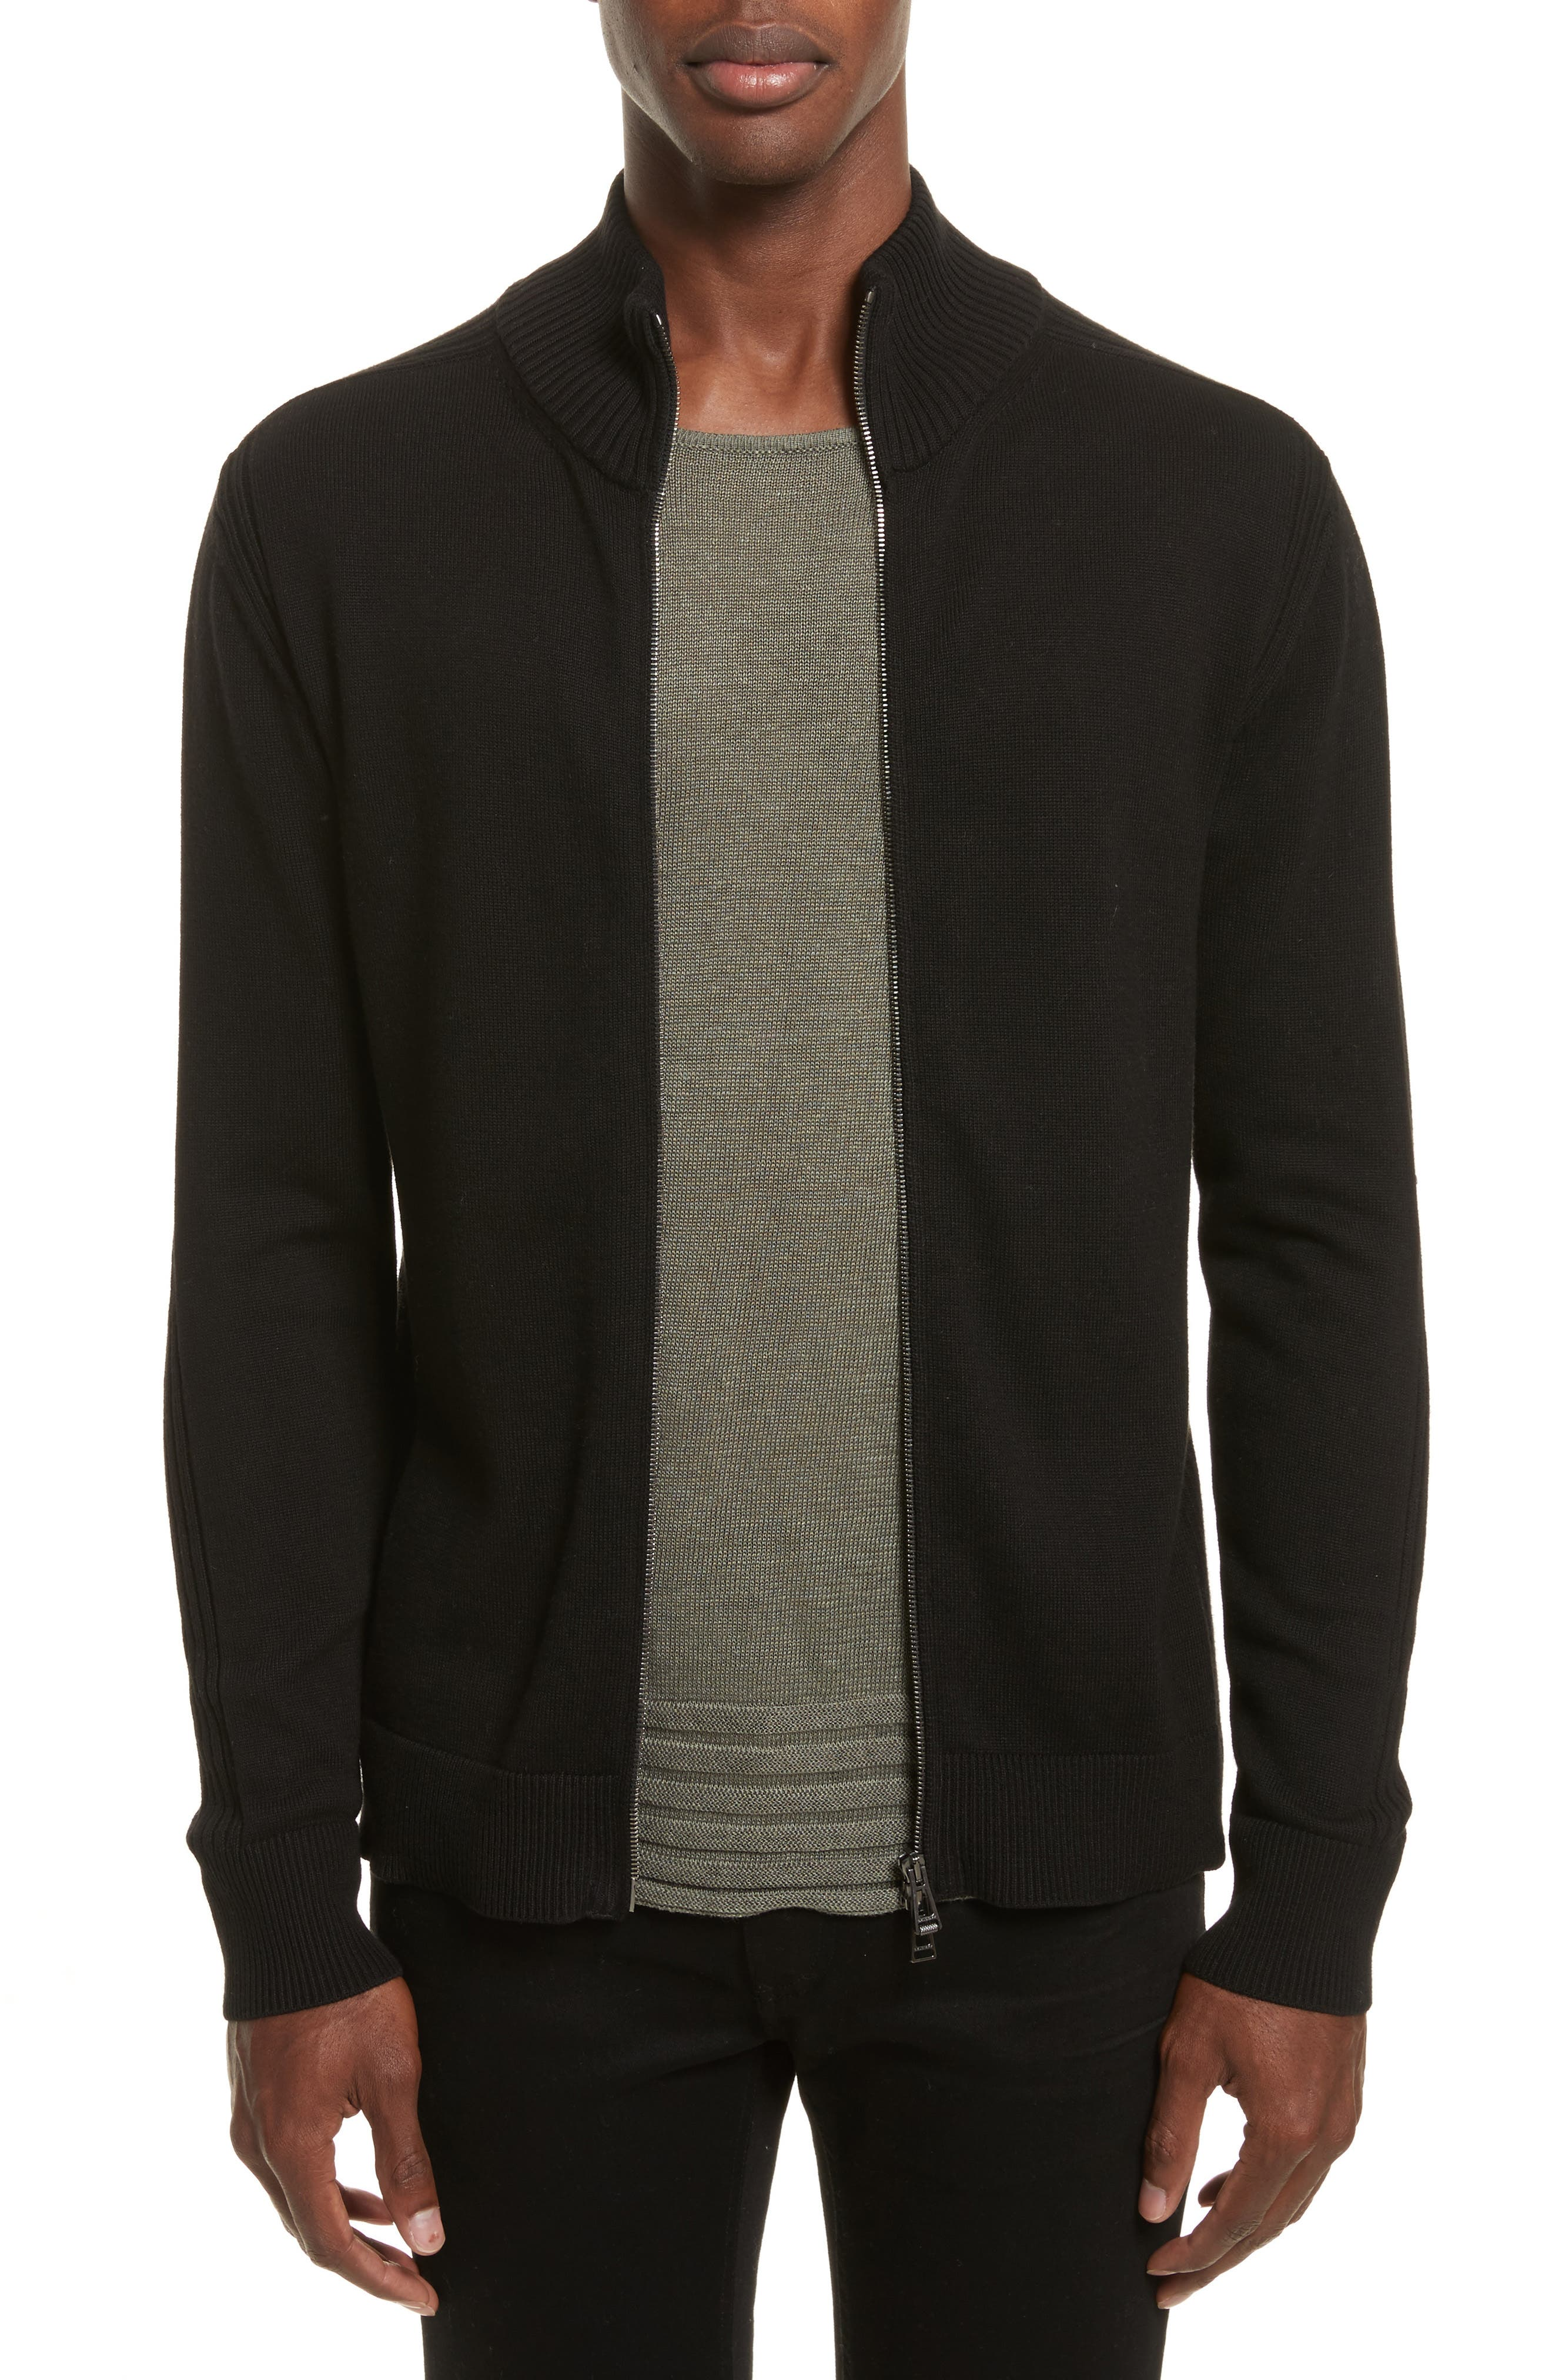 Allerford Knit Cotton Jacket,                         Main,                         color, 001